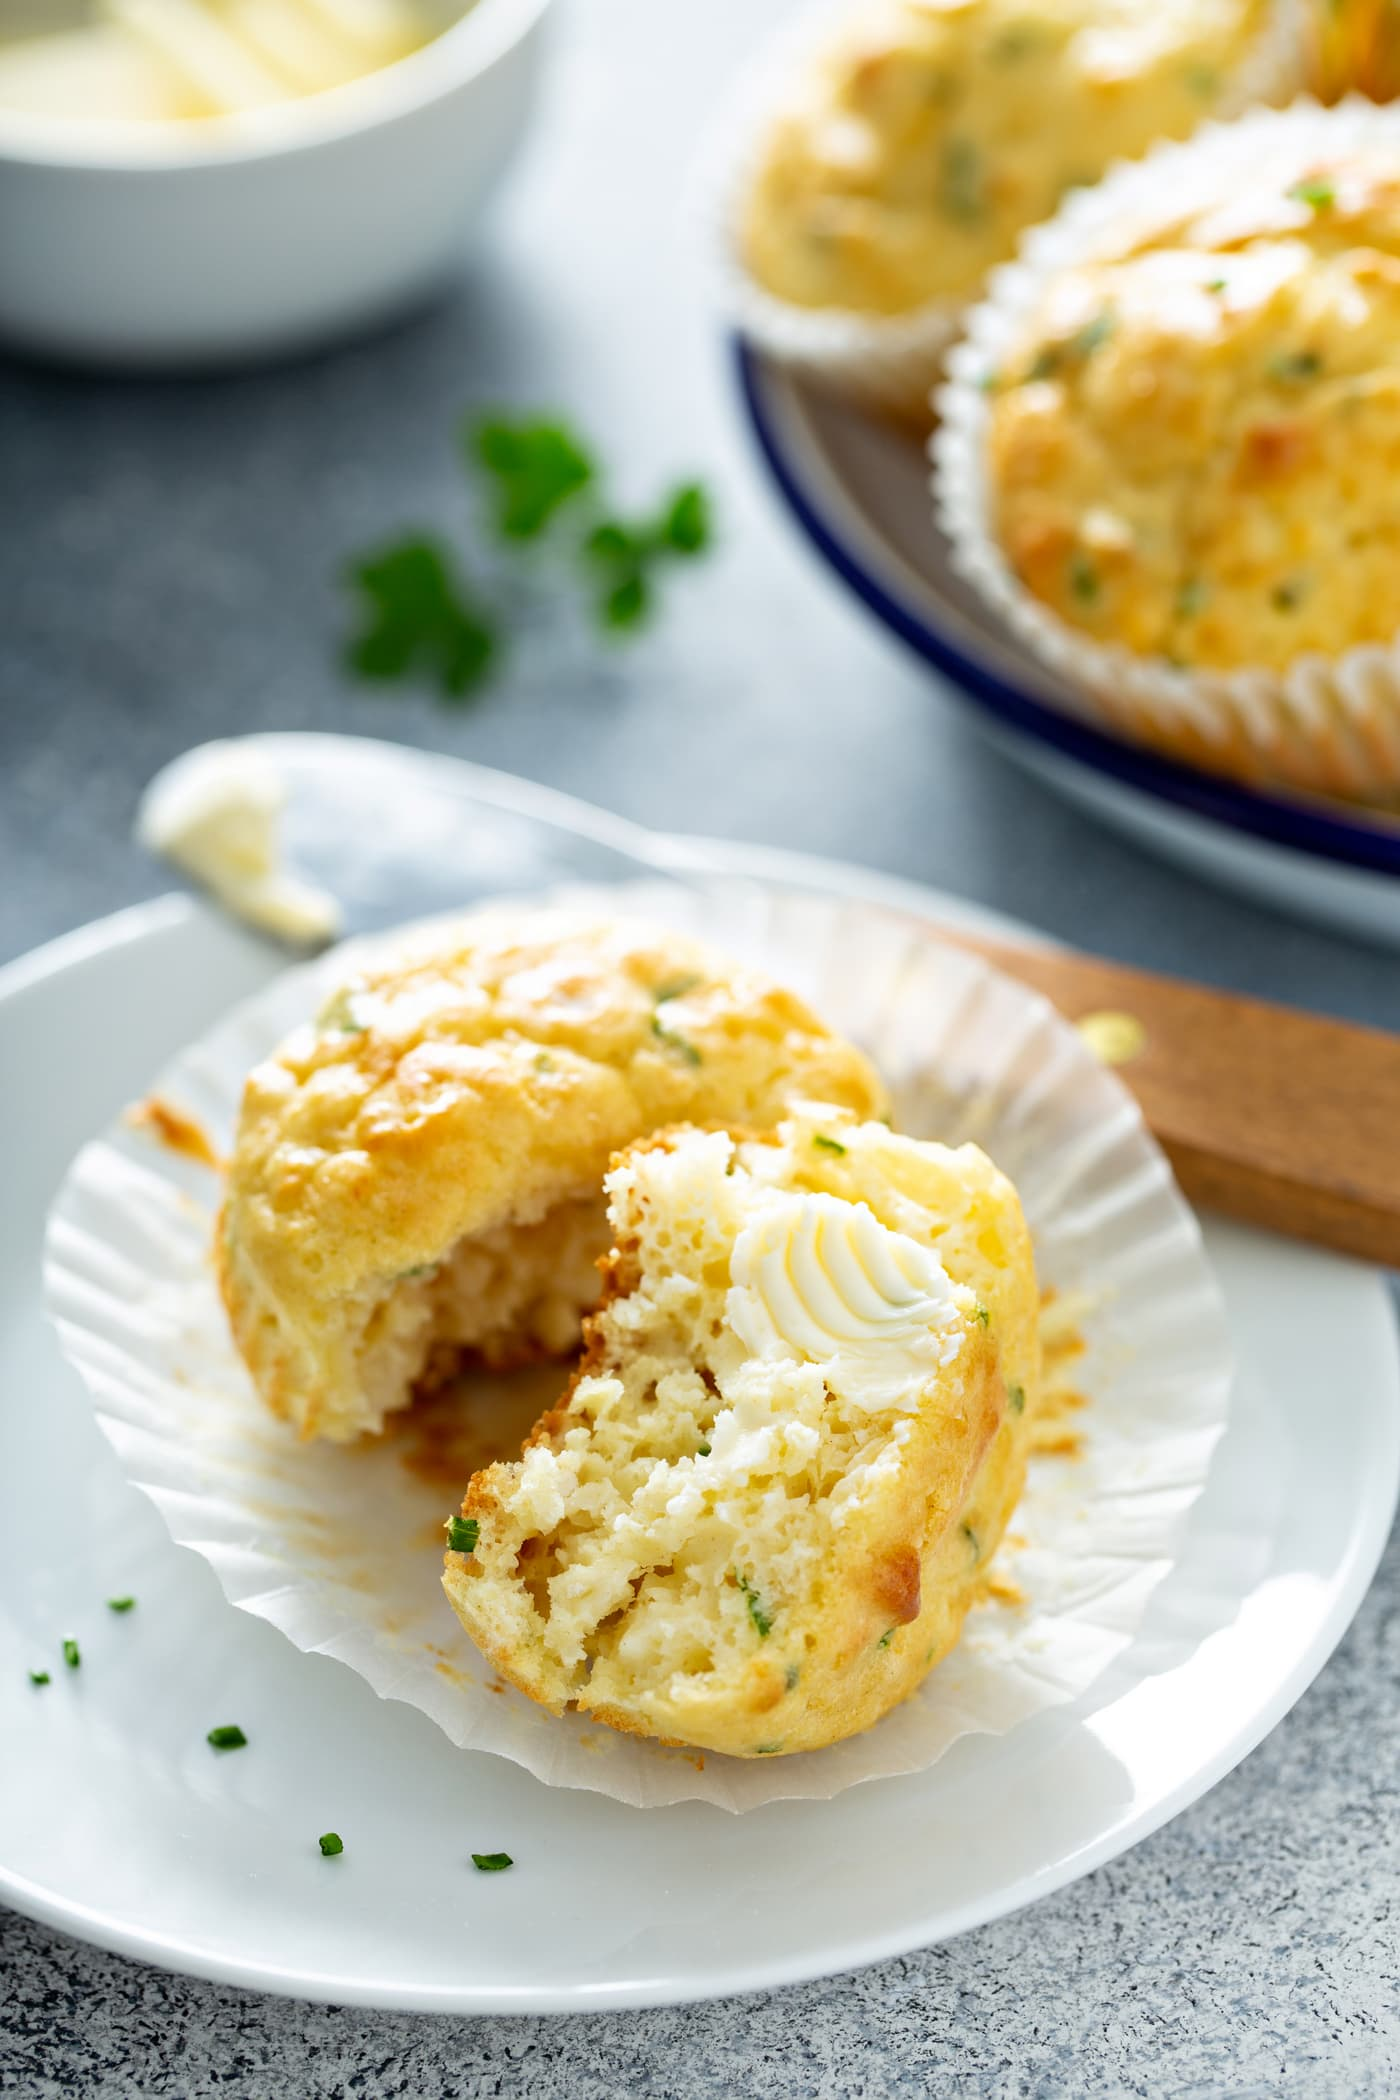 A muffin on a plate. The paper muffin liner is peeled back and the muffin is broken in half showing the herbs inside. A pat of butter is on one half of the muffin. There is a butter knife resting on the plate that the muffin is on. There is a plate of muffins in the background.